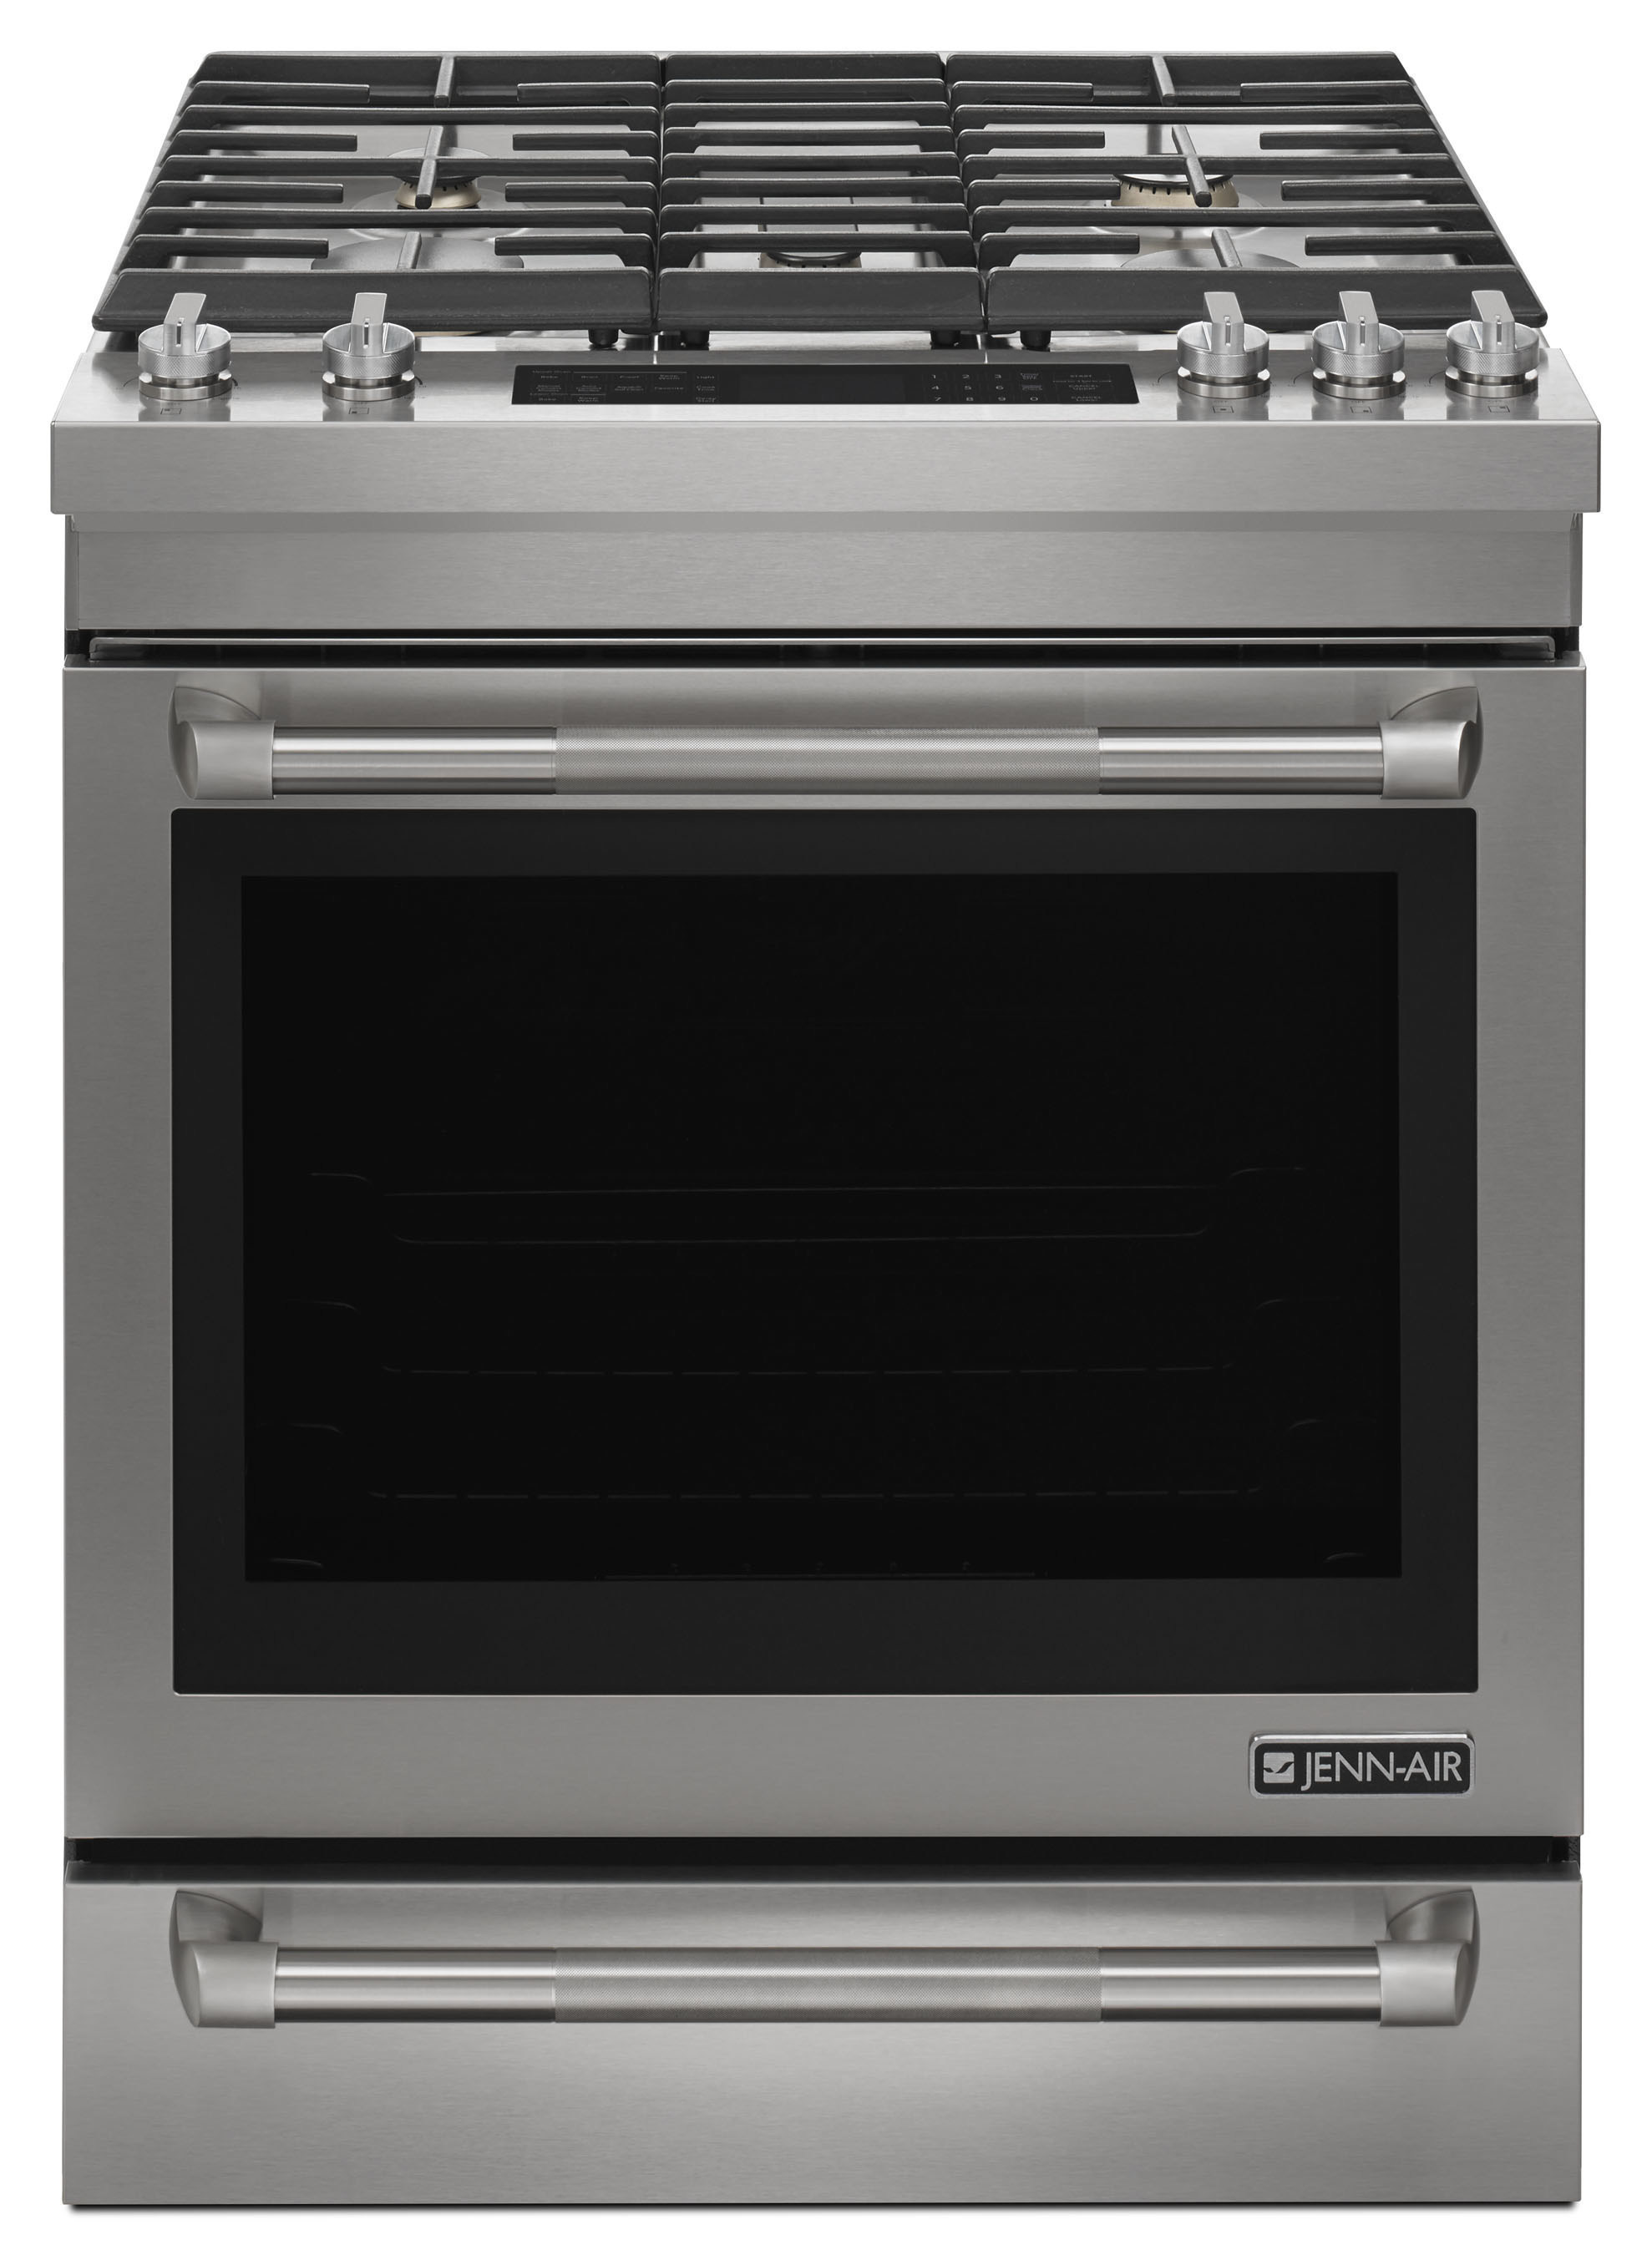 Jenn-Air brand's new collection of 30-inch ranges are offered in dual-fuel, gas, induction and radiant options.